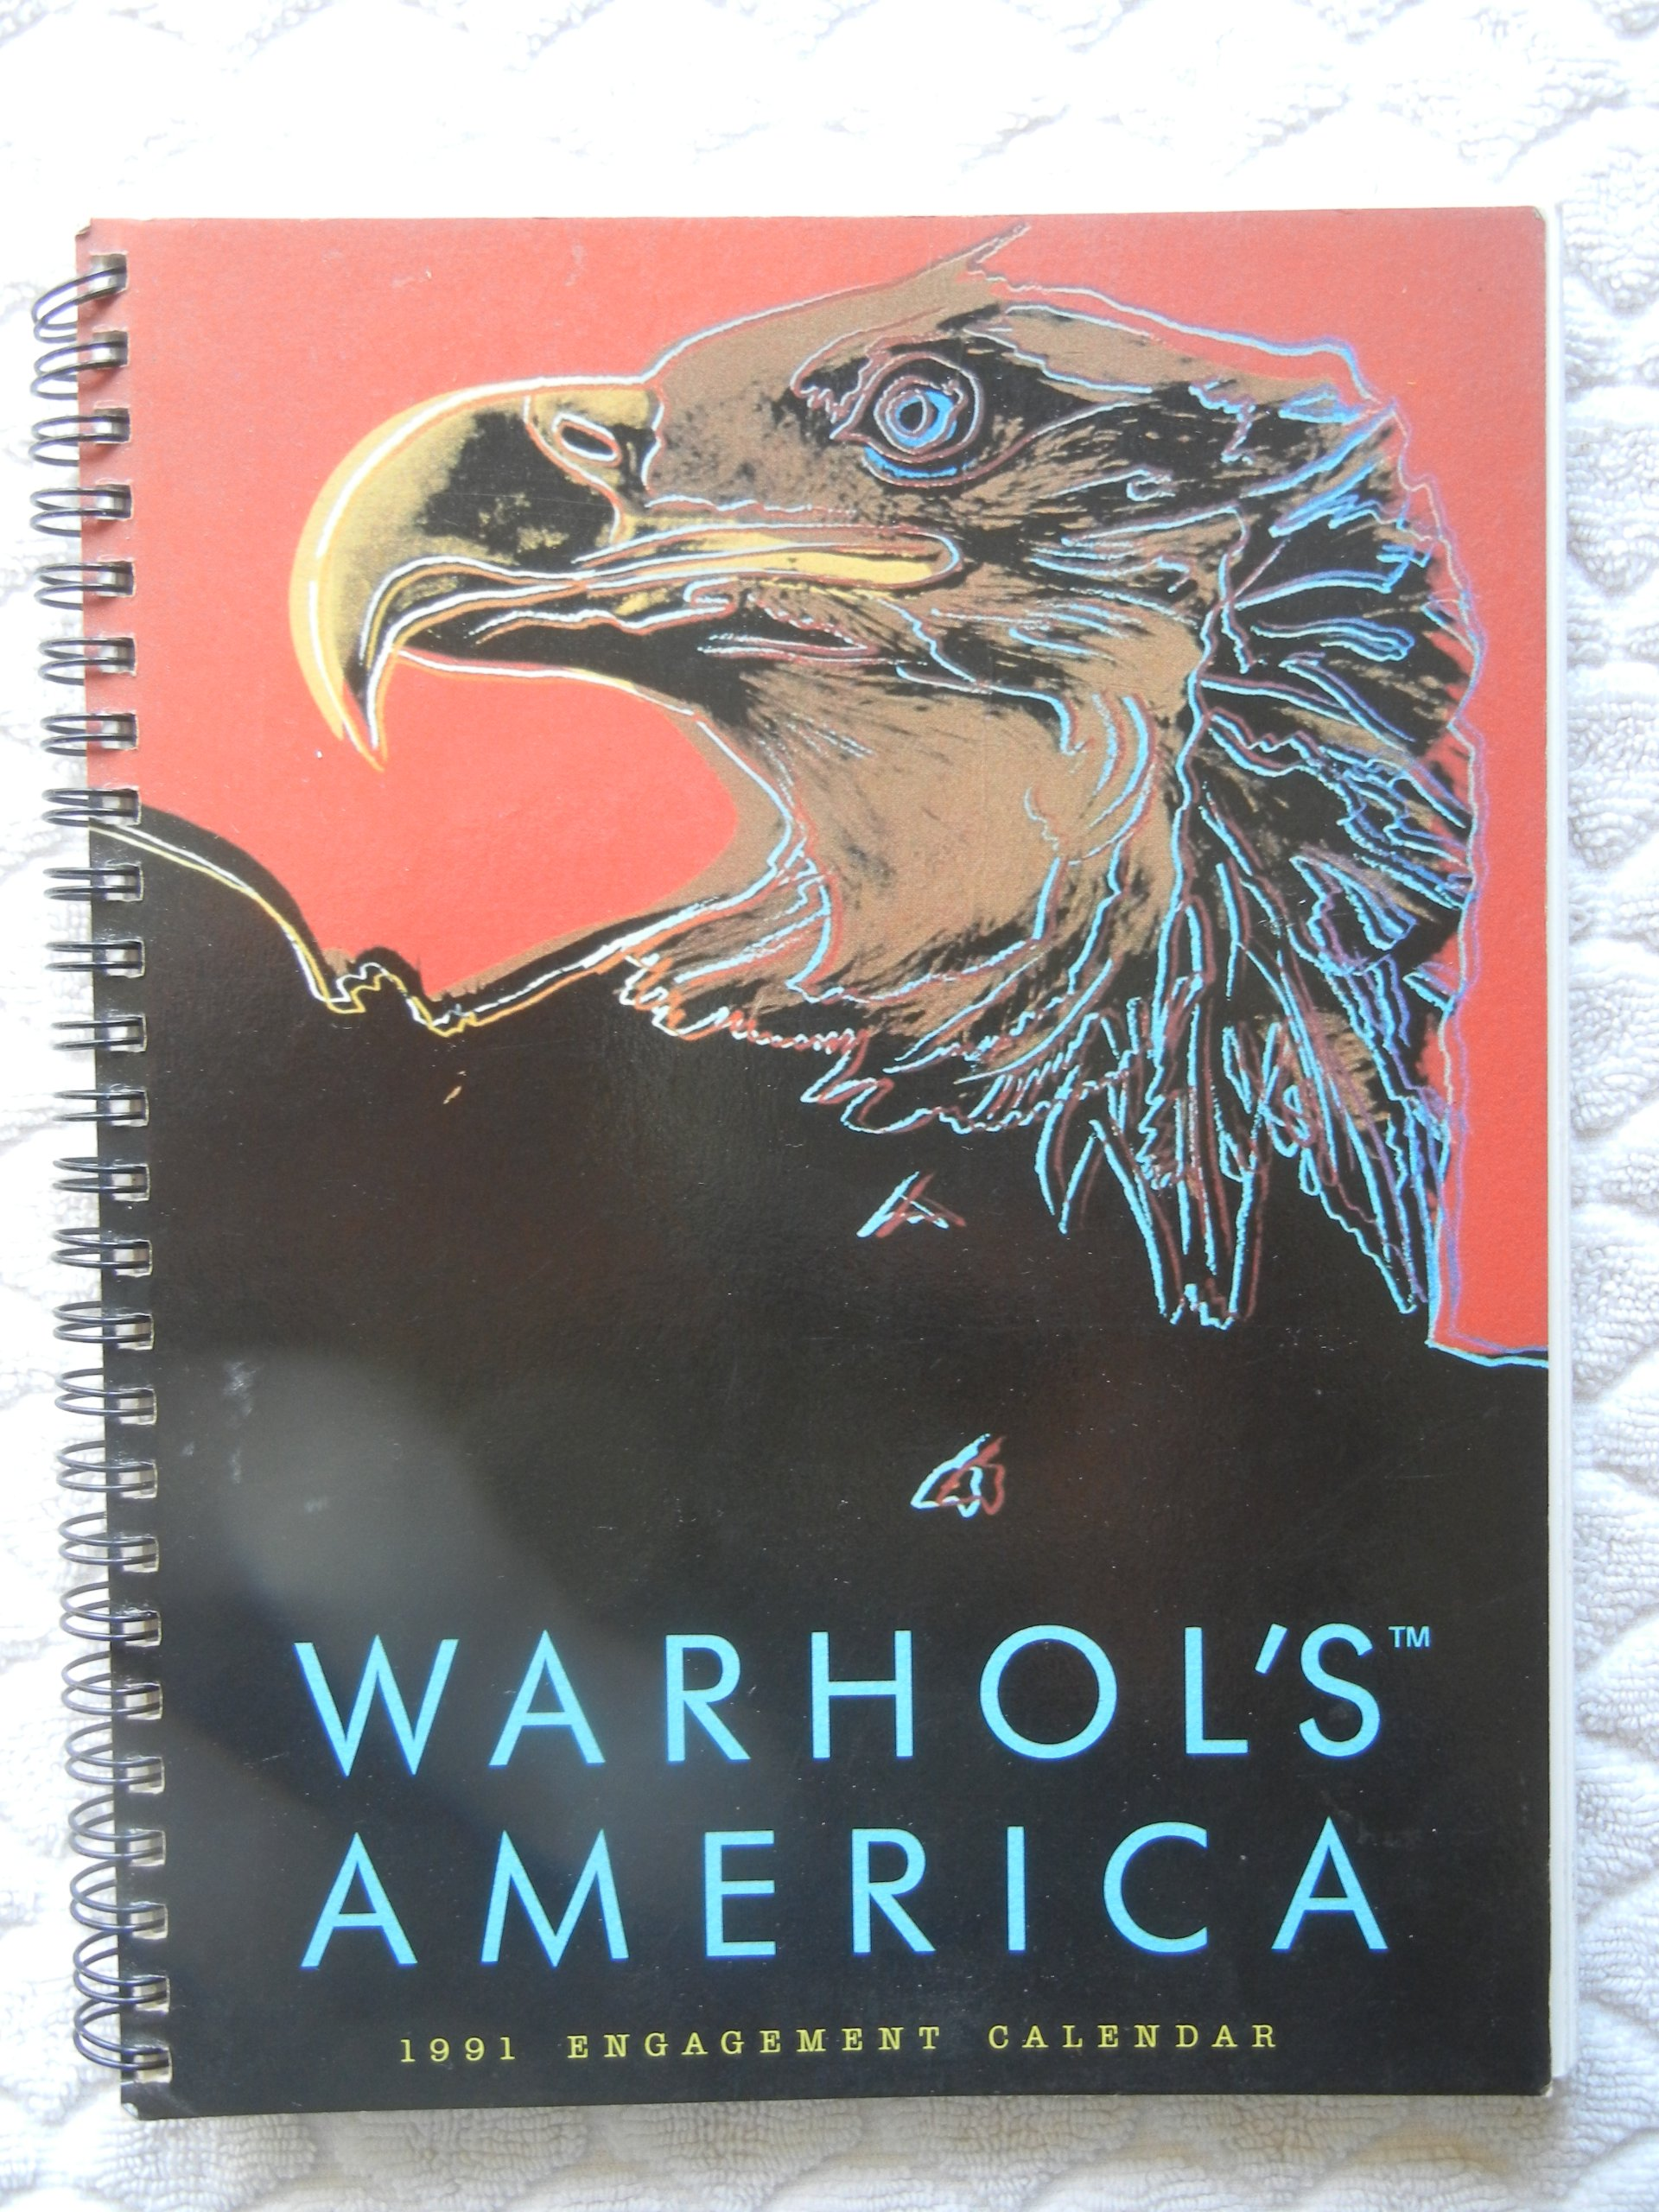 warhols america engagement calendar 1991 with illustrations and weekly quotes by andy warhol